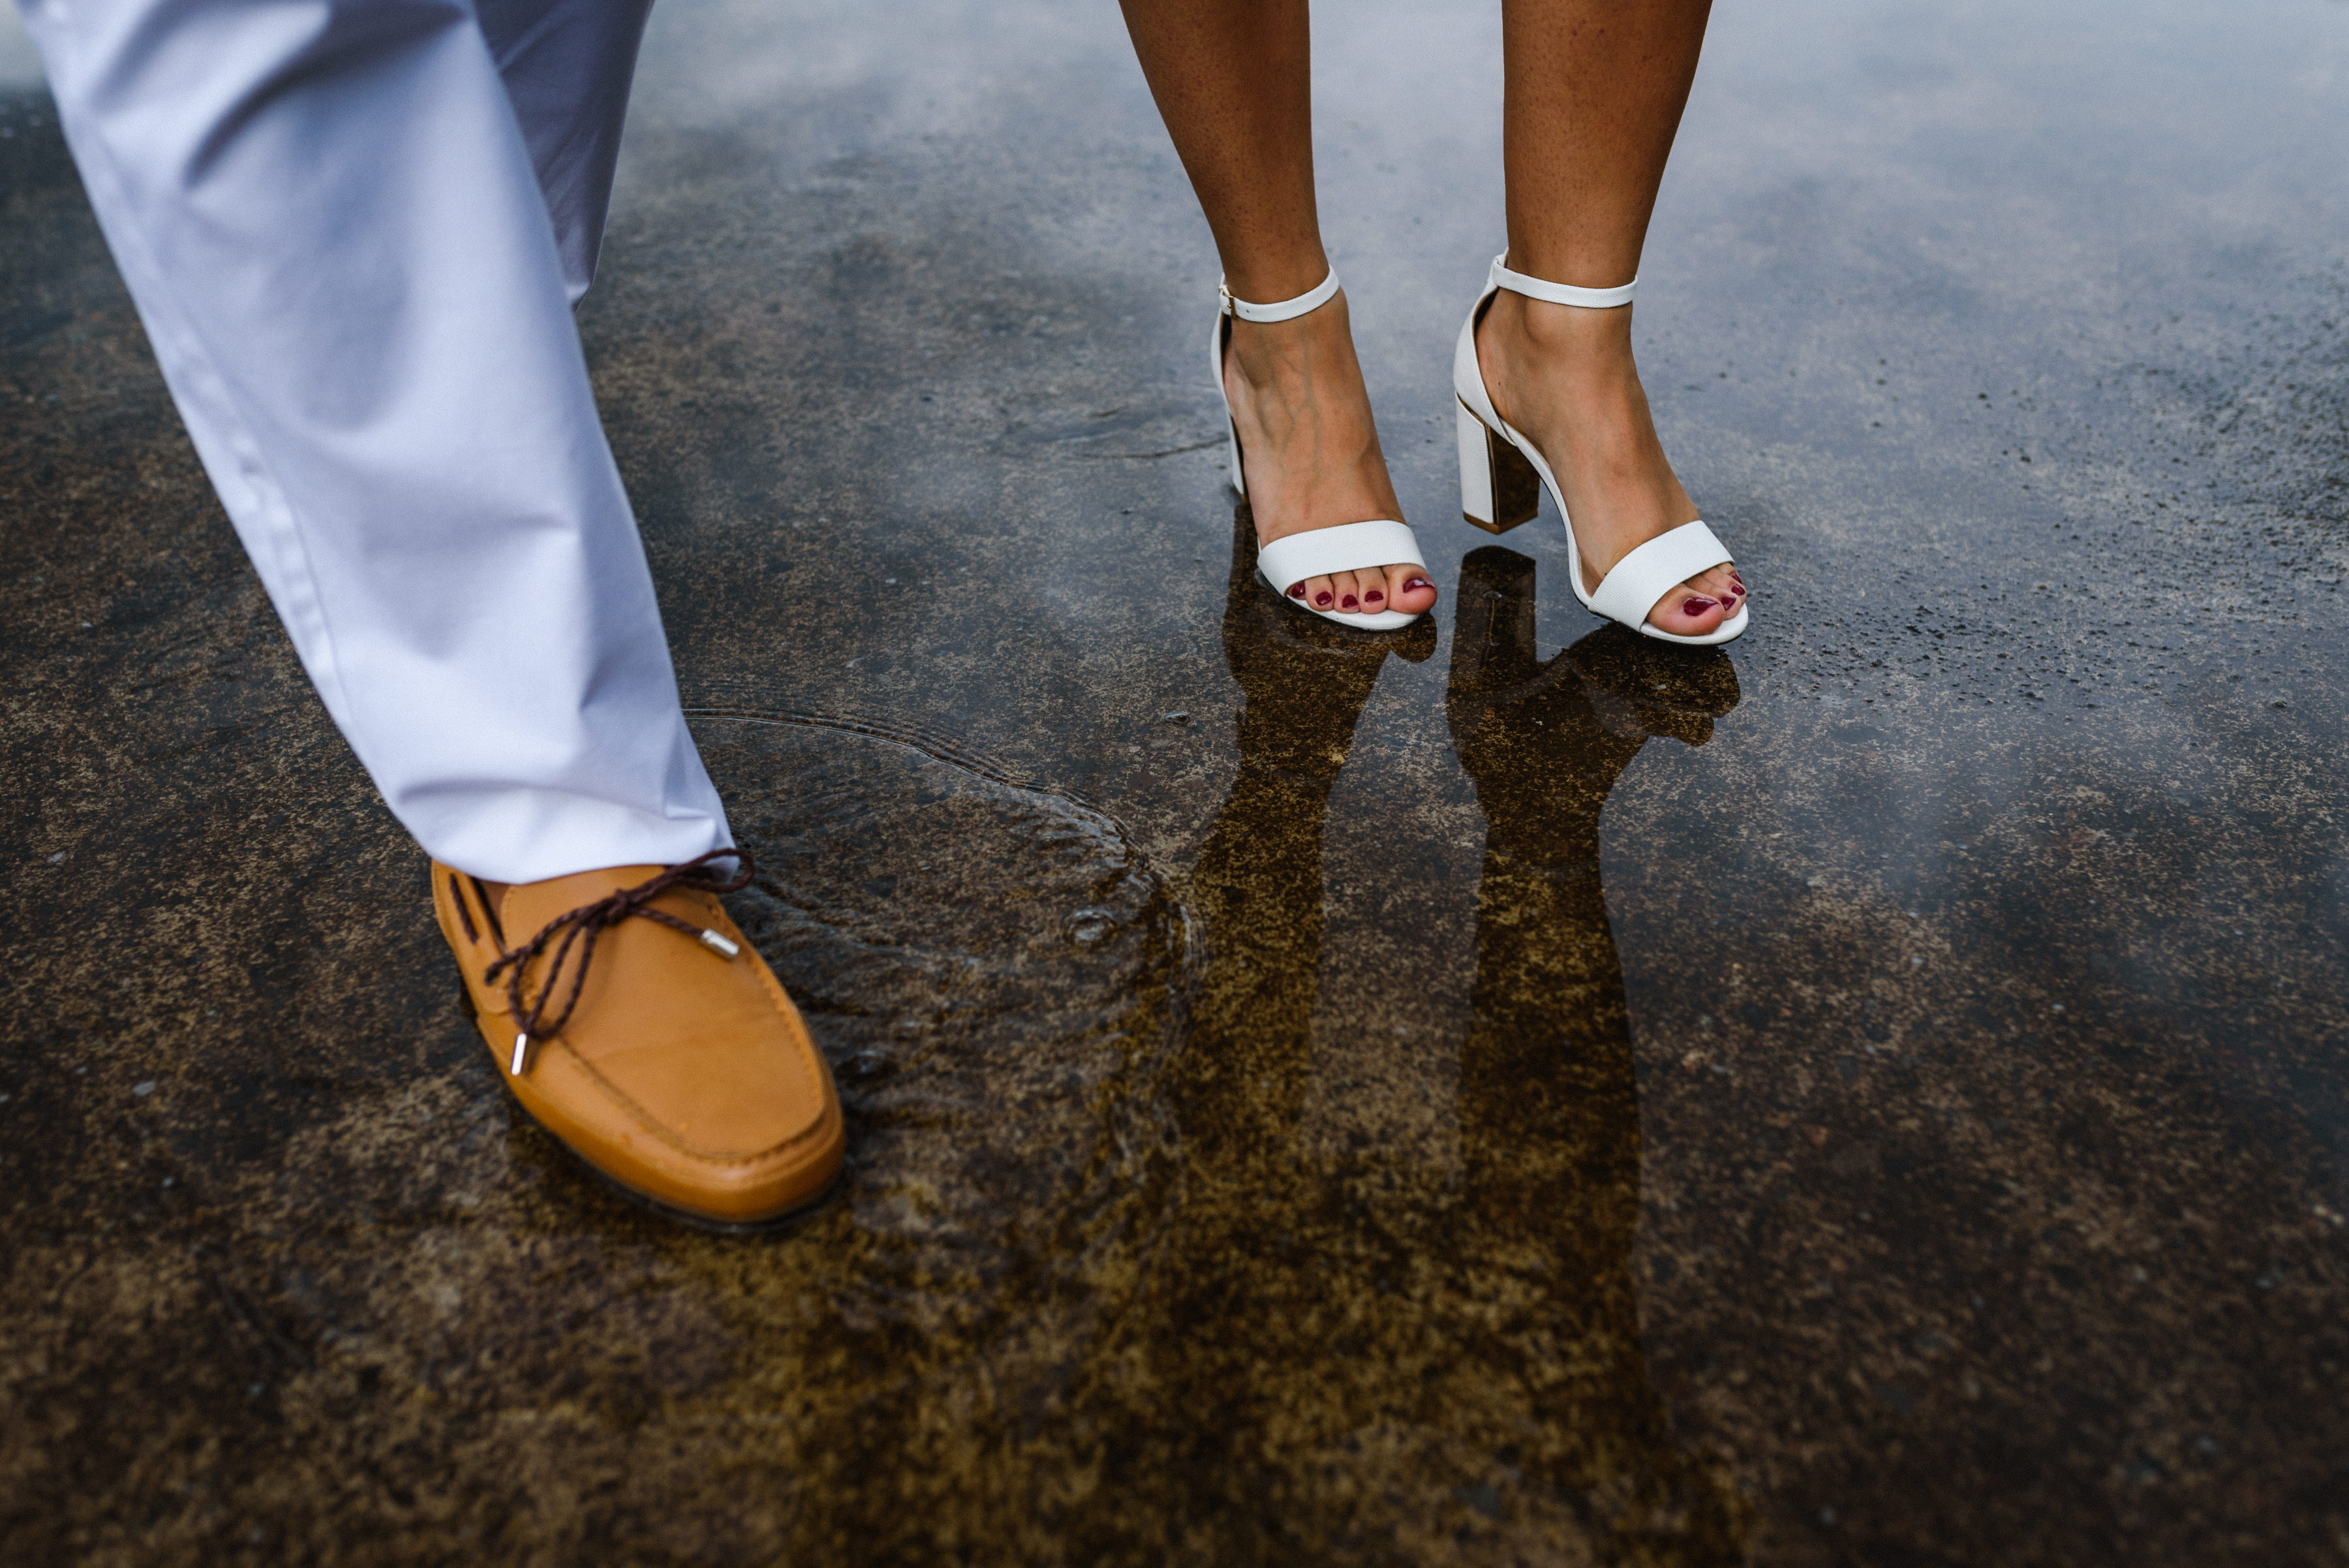 Close up of man and women's feet walking through puddle